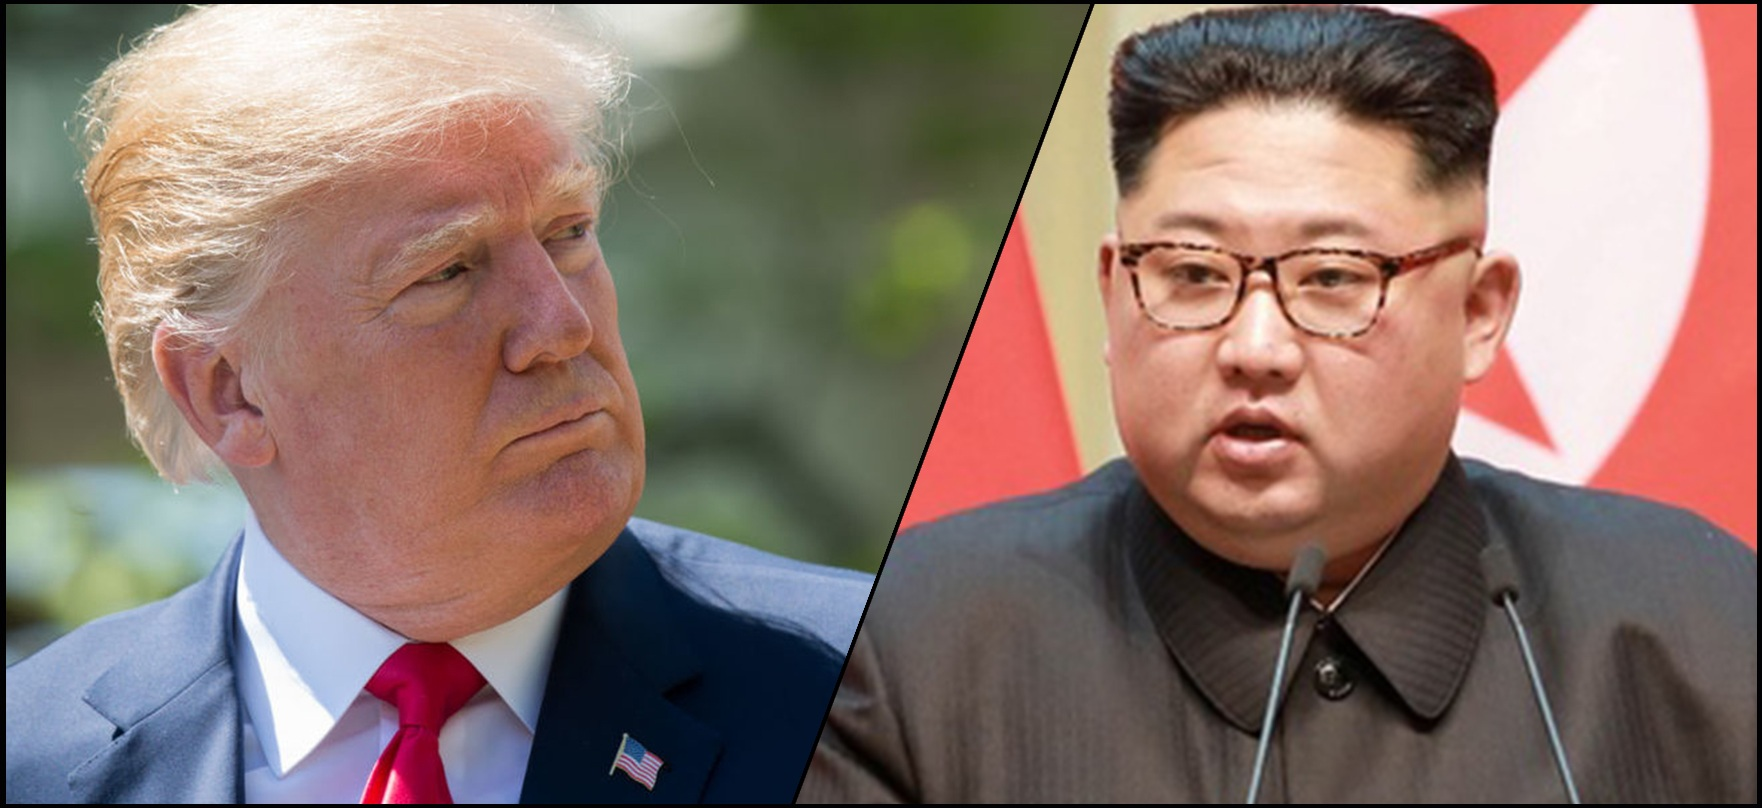 North Korean dictator should accept nuclear disarmament or be prepared for annihilation like Gaddafi, warns US President